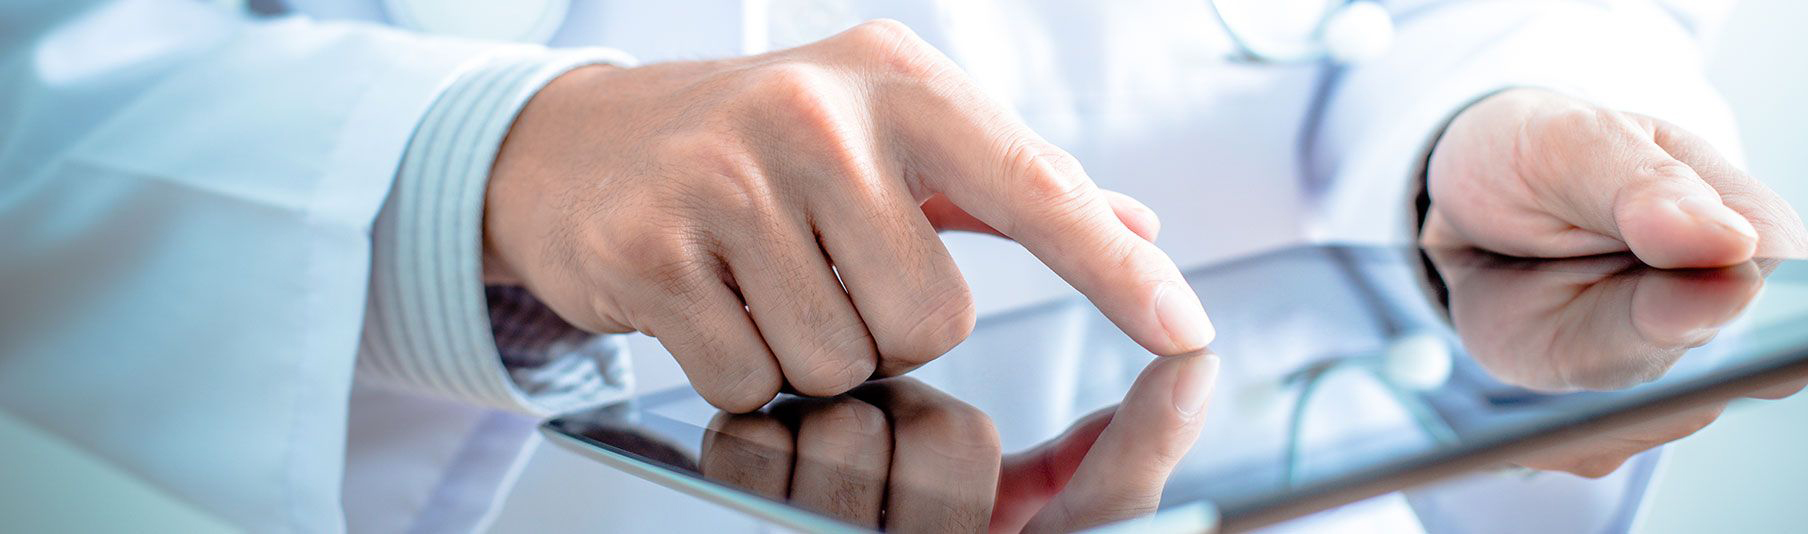 Key Locum Insurance Covers: Close-up of a doctor's hand using a tablet